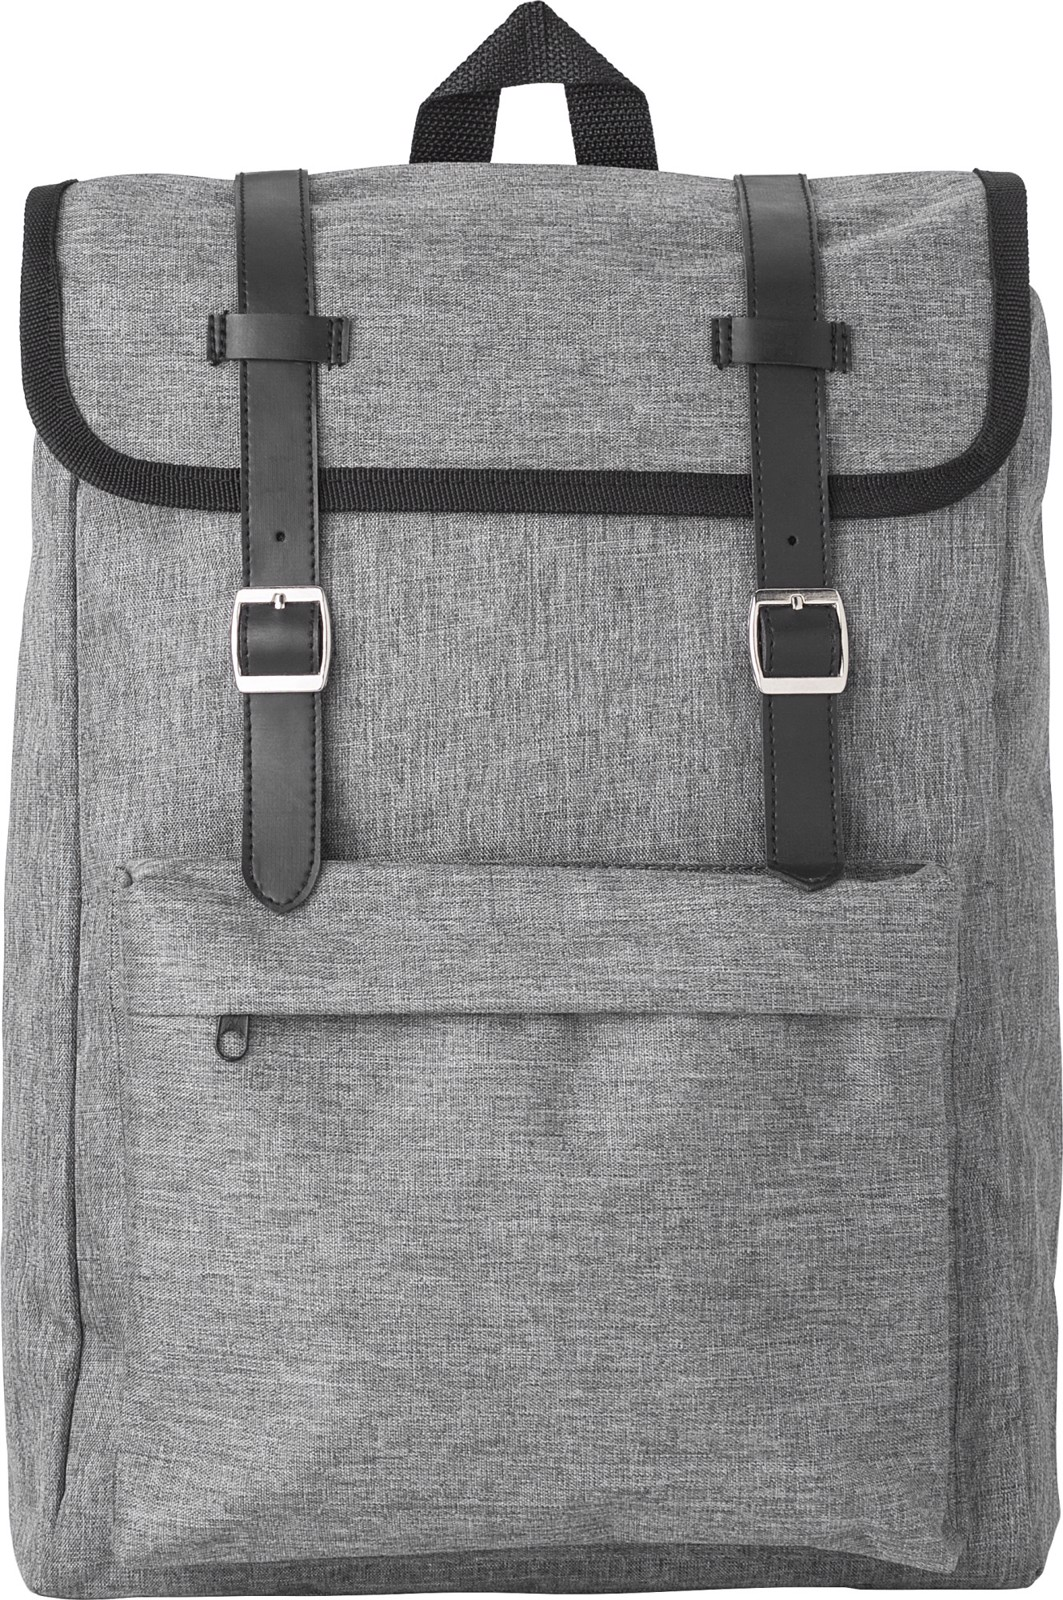 Polyester (210D) backpack - Grey